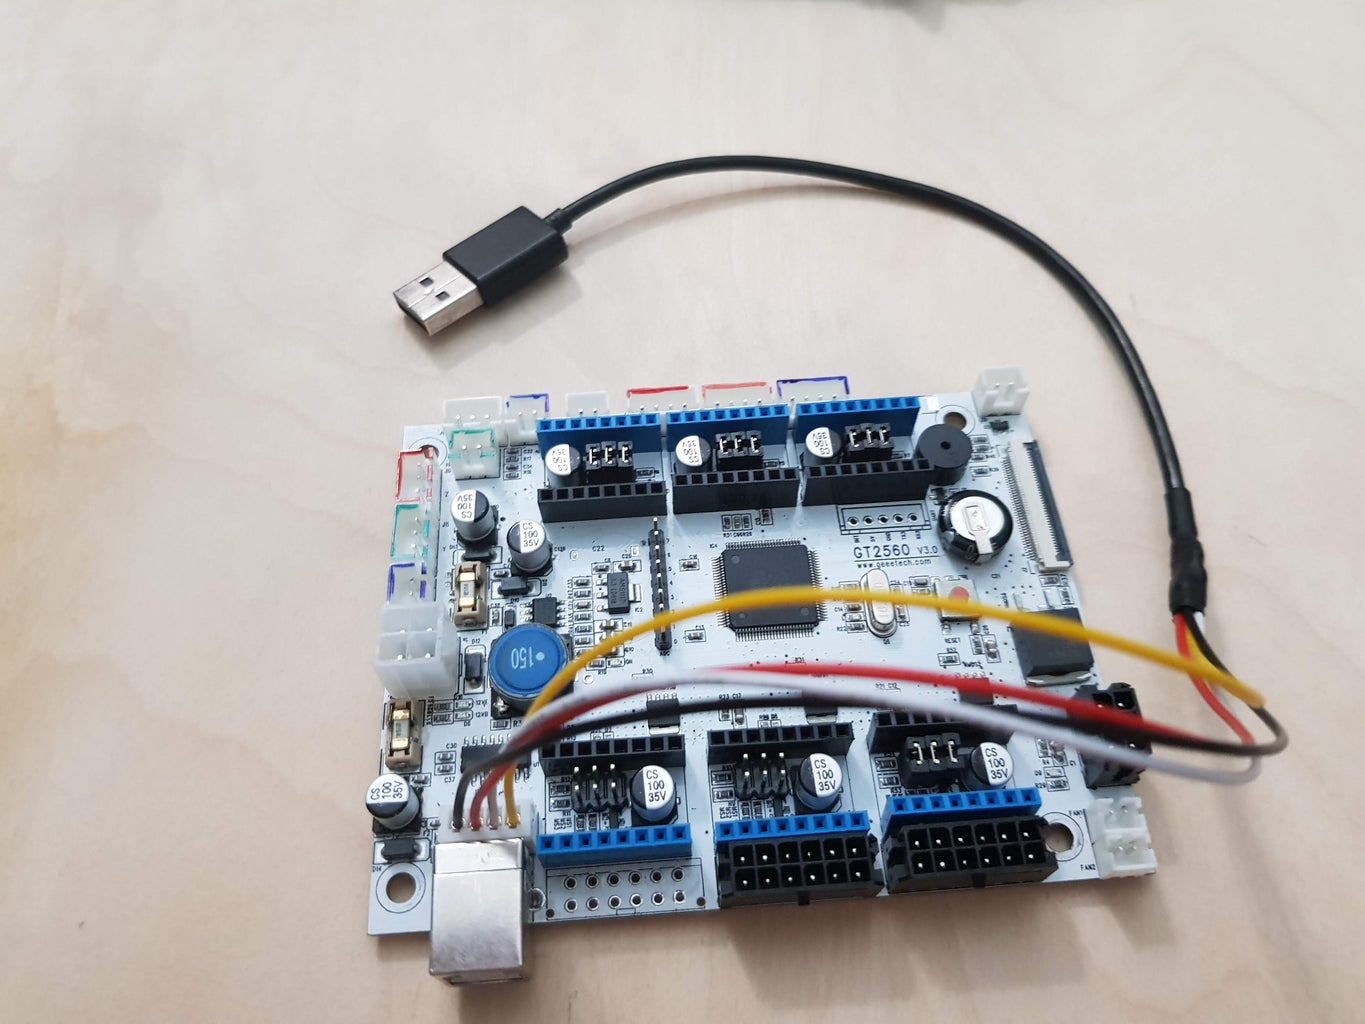 Geeetech Board to Raspberry Pi Via Custom USB Cable Direct Wired